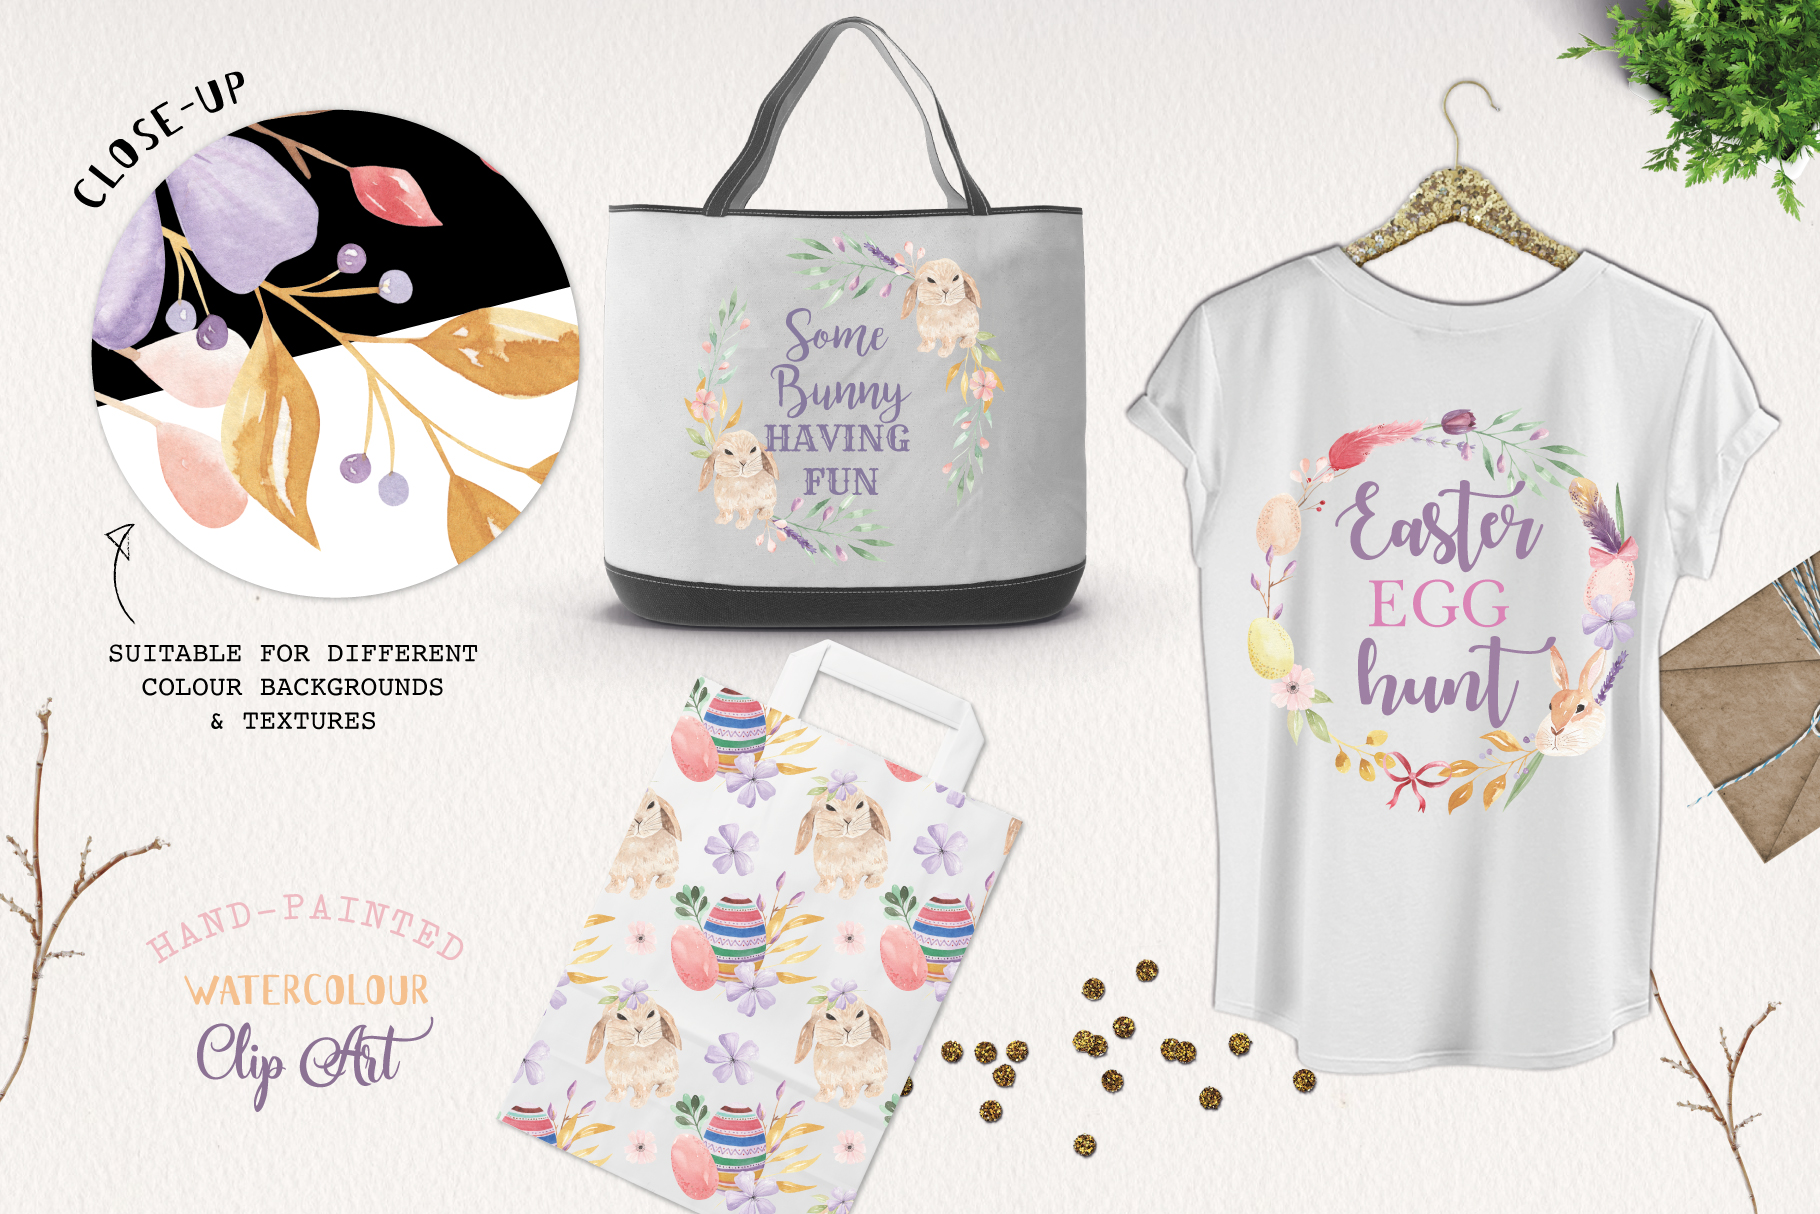 Easter Egg HUGE Bunny Watercolor Floral Spring Clipart Kit example image 7